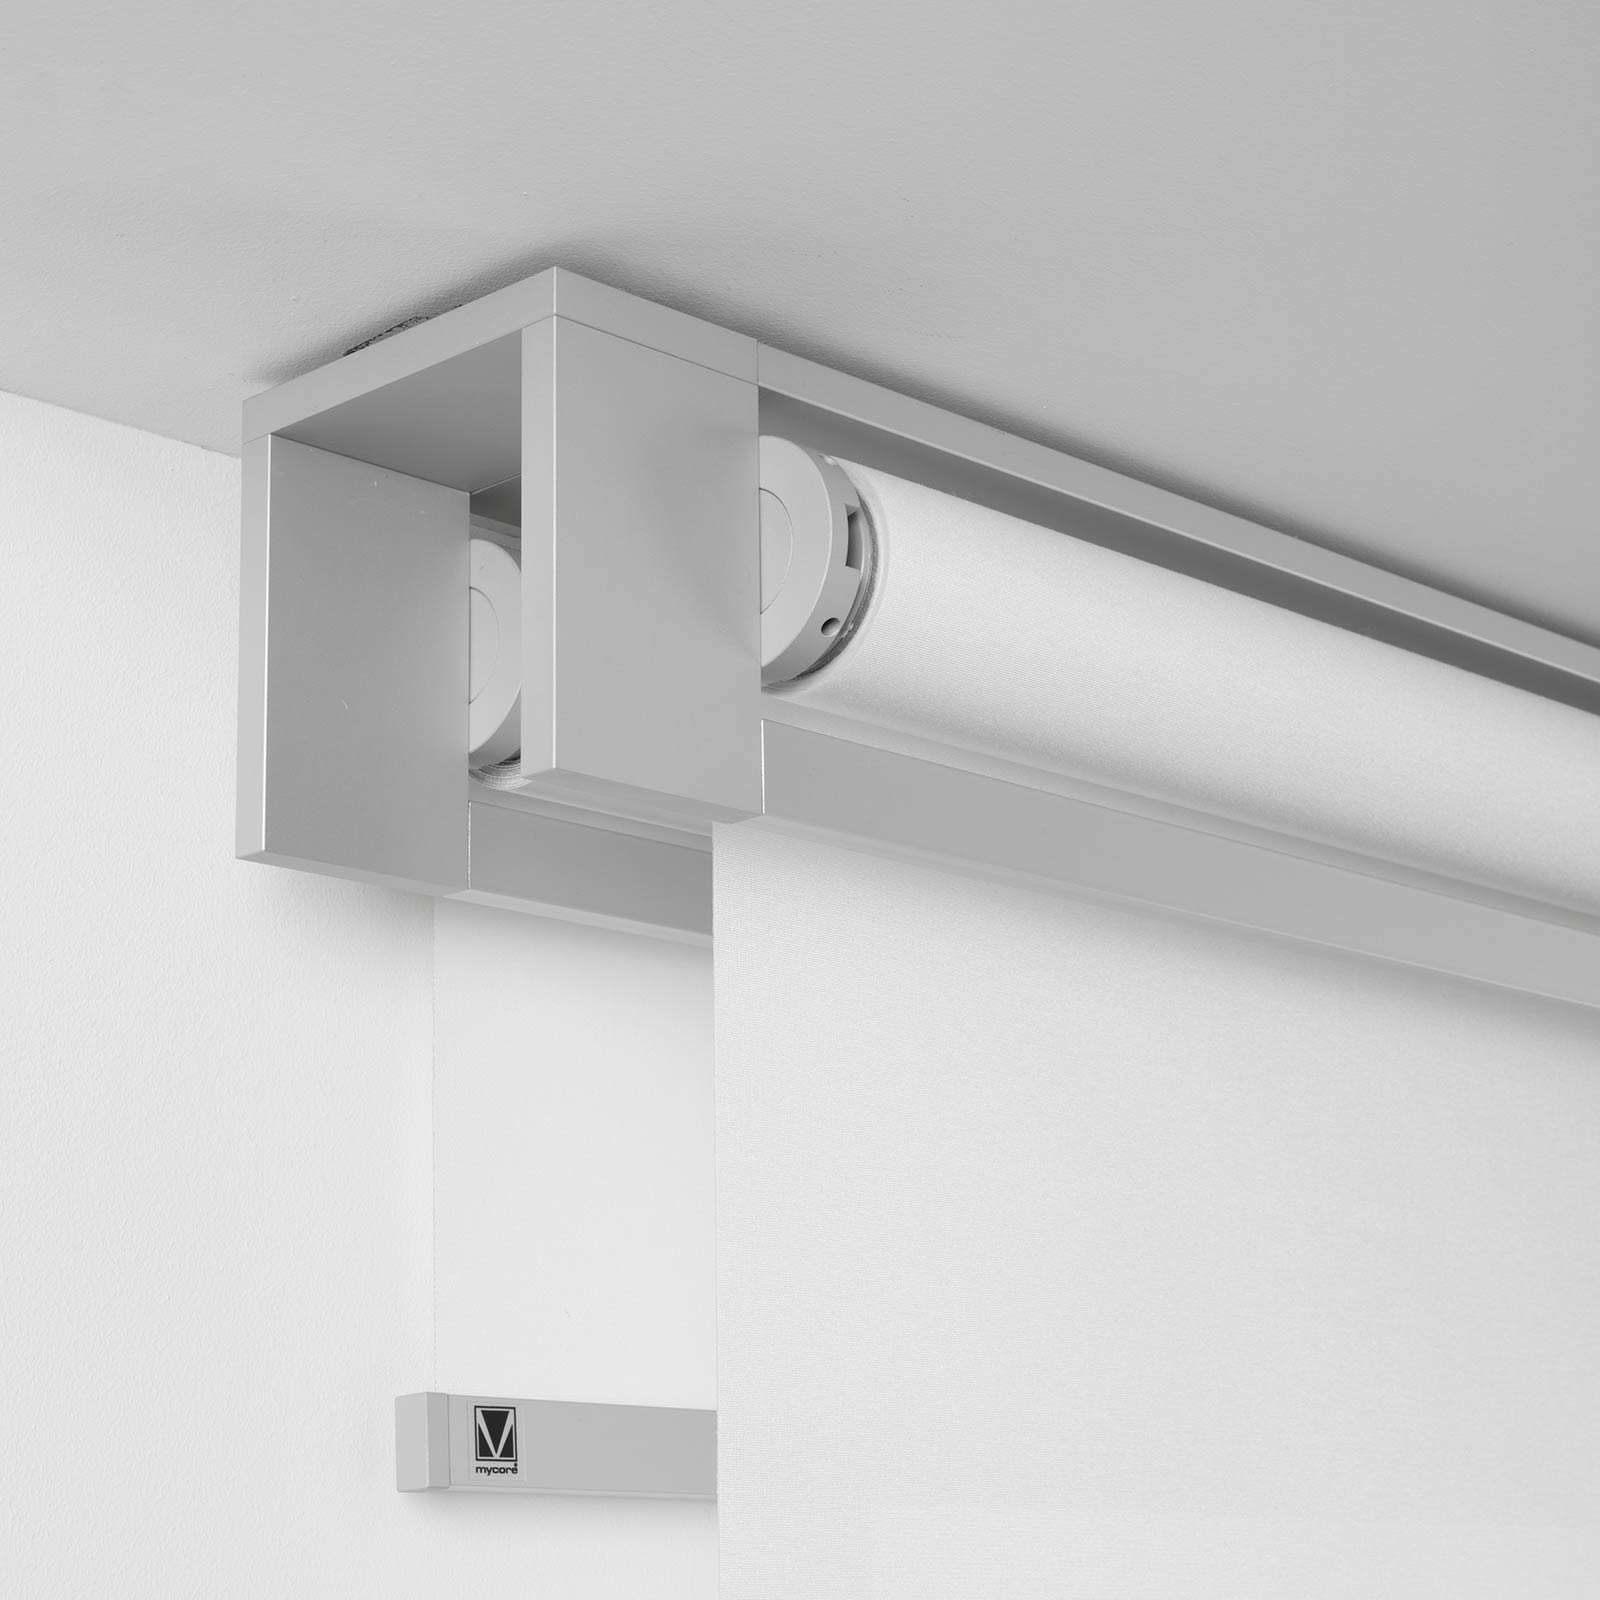 Frame Double — A soffitto